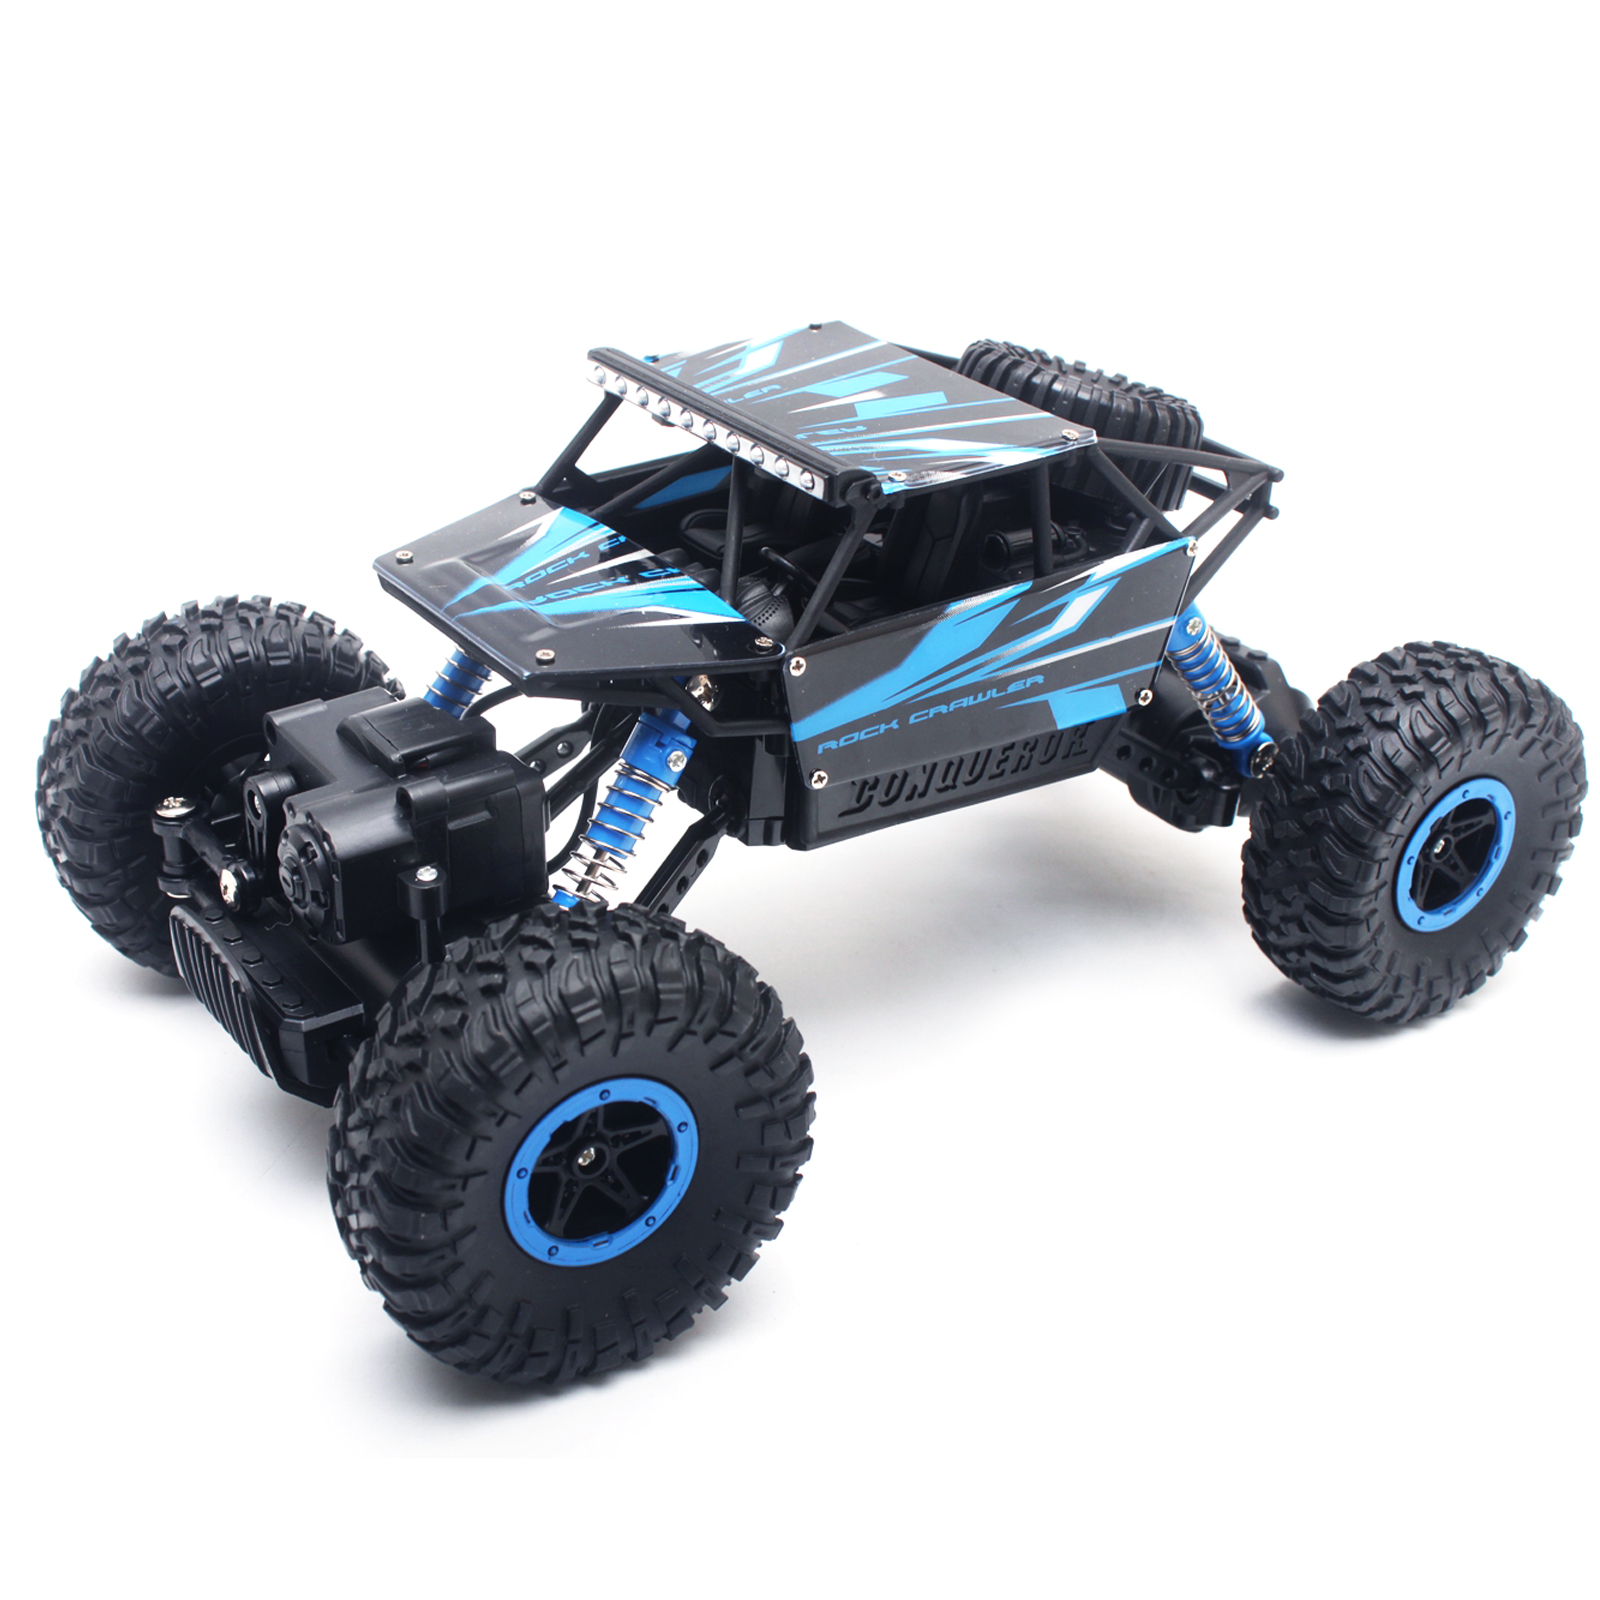 Toy Buggy Ebay 4wd Rc Monster Truck Off Road Vehicle 2 4g Remote Control